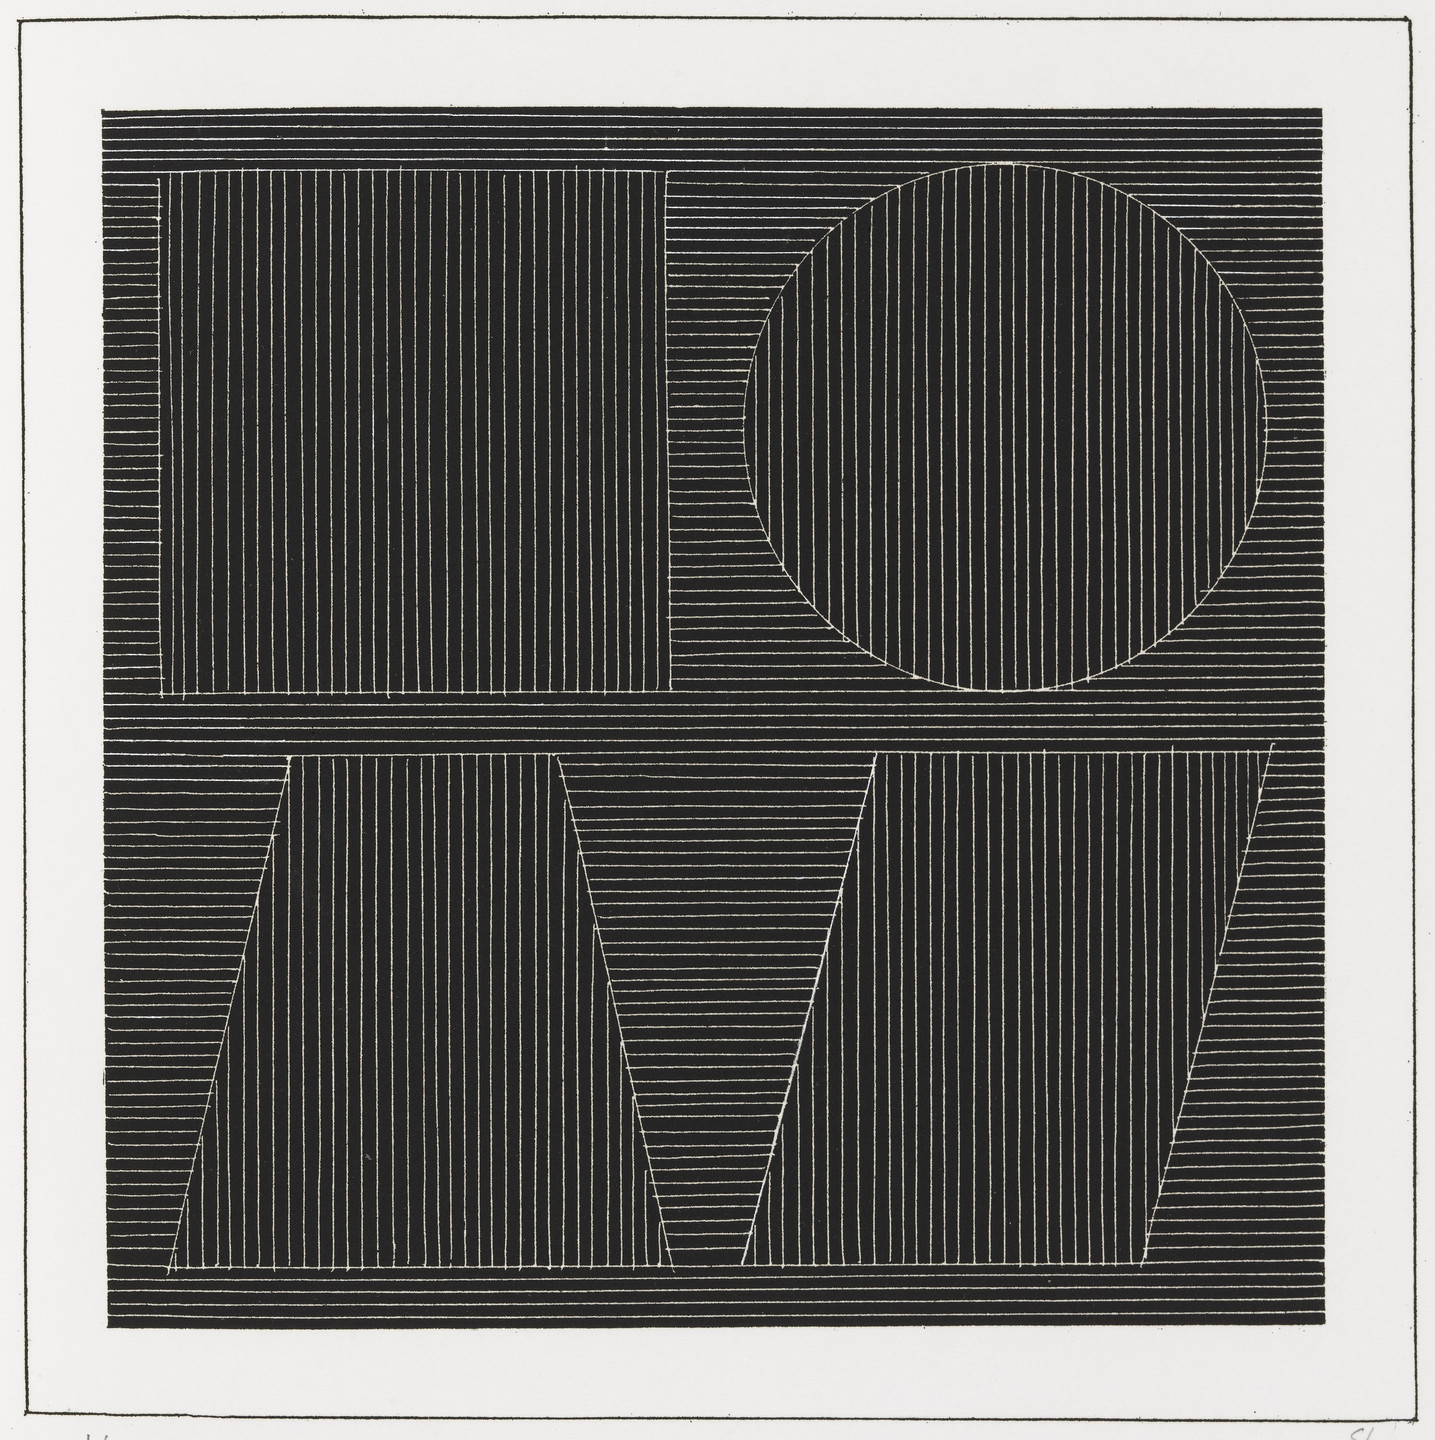 Sol LeWitt. Plate (folio 48) from Six Geometric Figures and All Their Combinations, Volume I. 1980